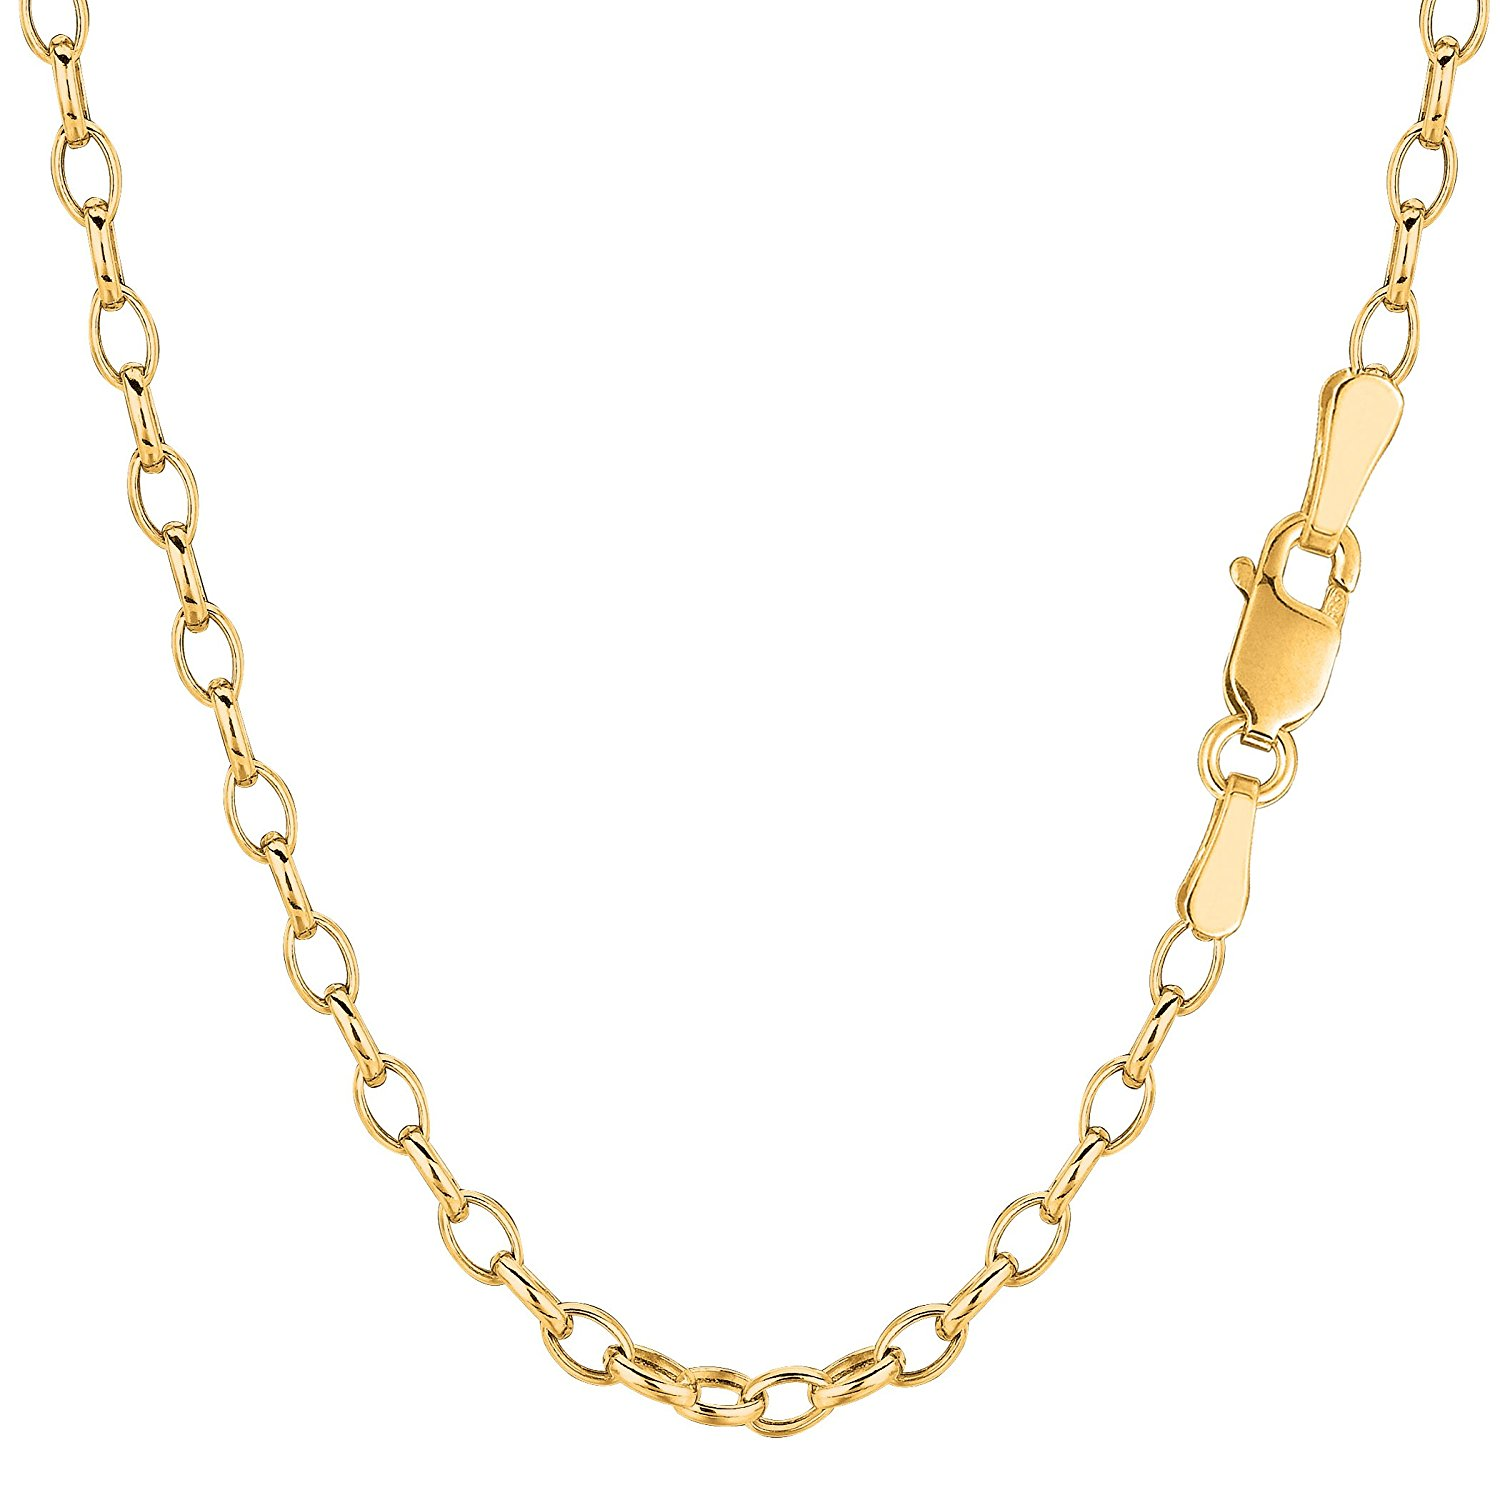 1//20 of 14k Flat Rolo Link Chain JOSCO 14k Gold Filled 1.2mm Necklace 14 to 36 inches